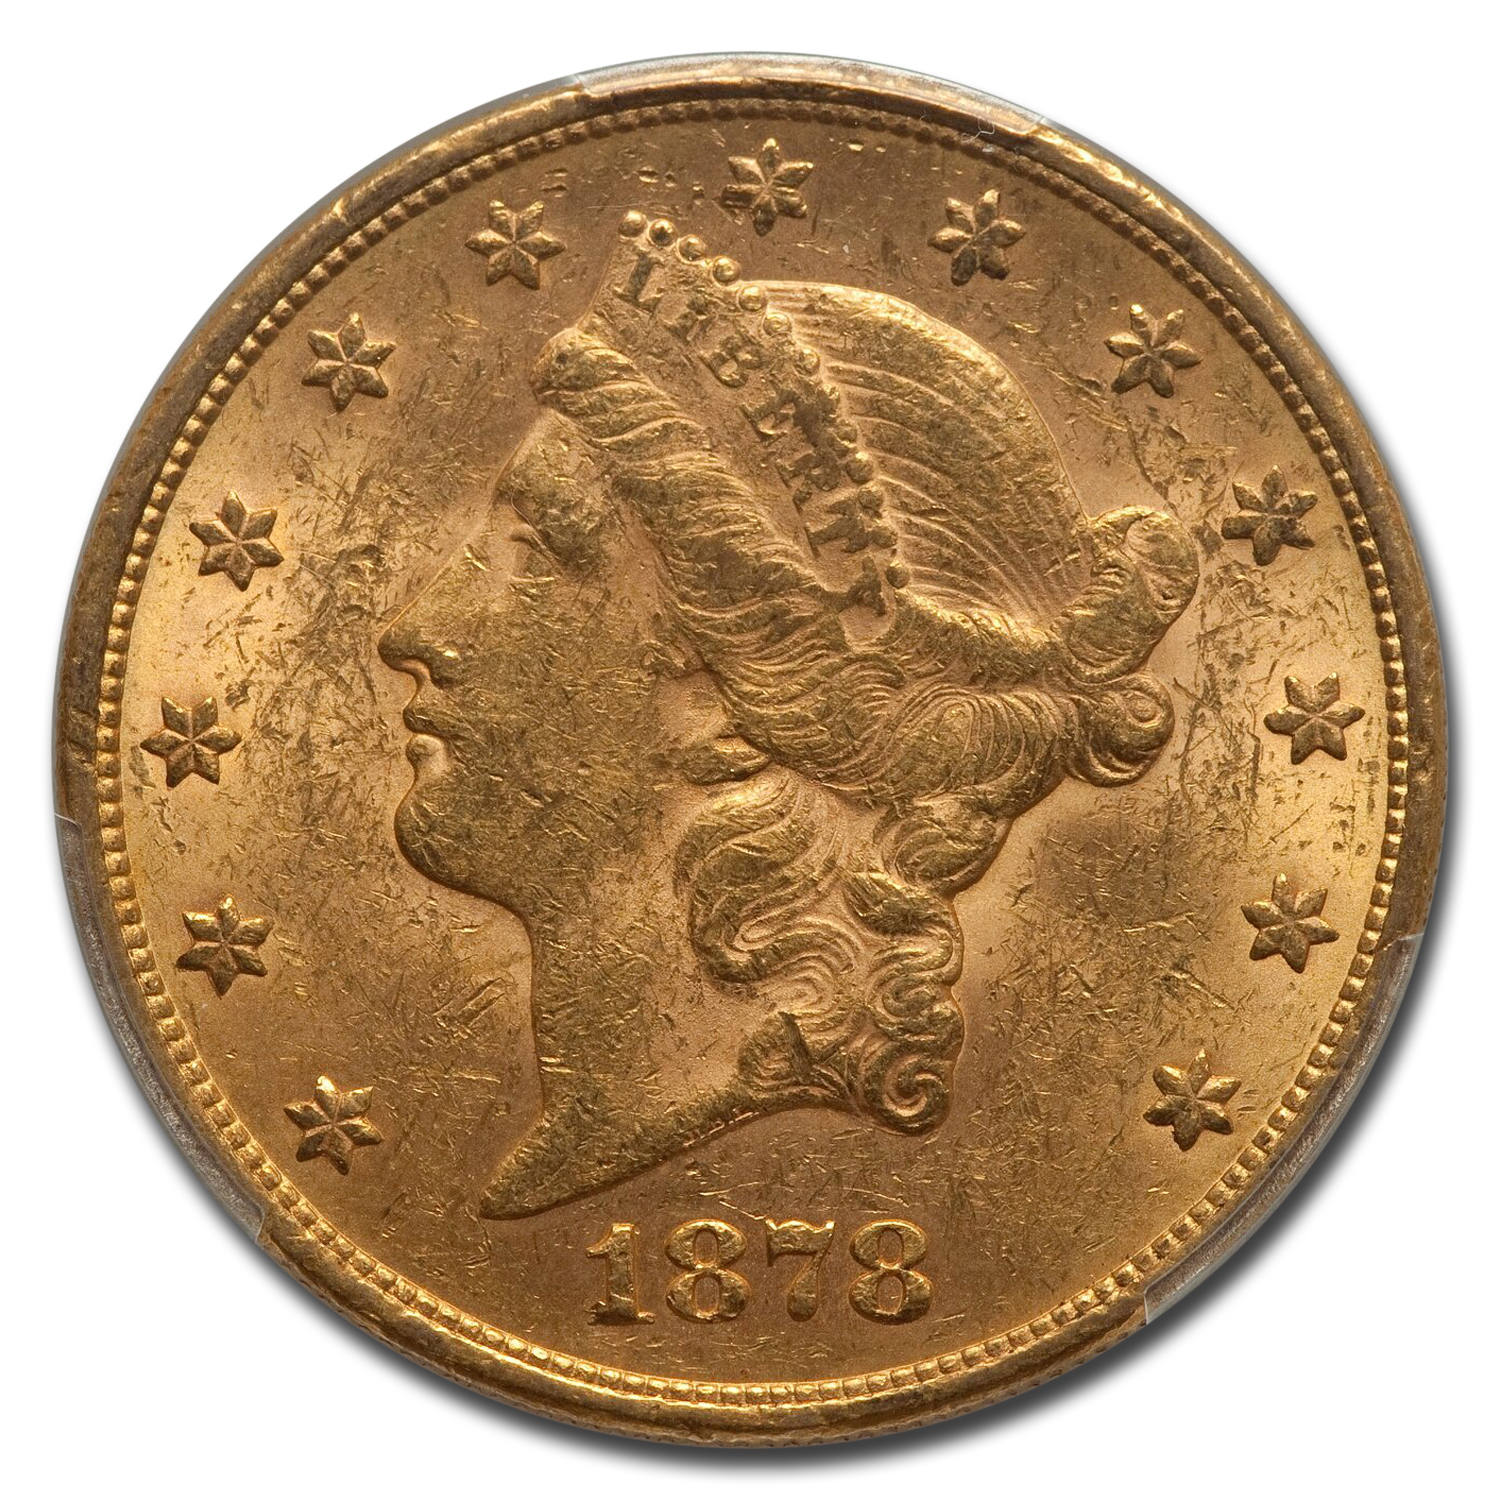 1878 $20 Gold Liberty Double Eagle - AU-58 PCGS